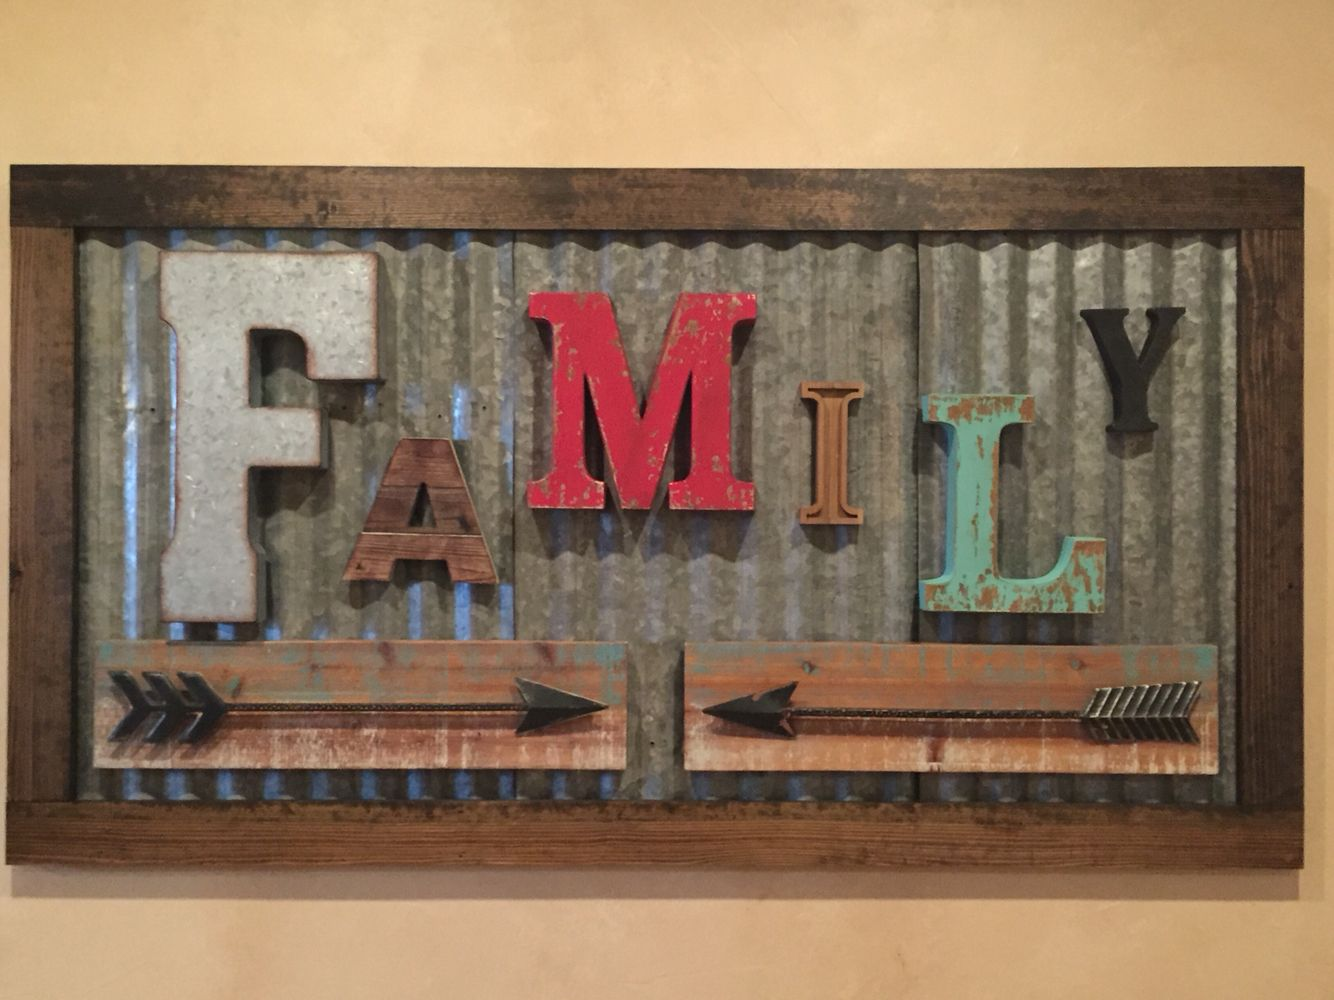 rustic family sign made from vintage letters and old corrugated